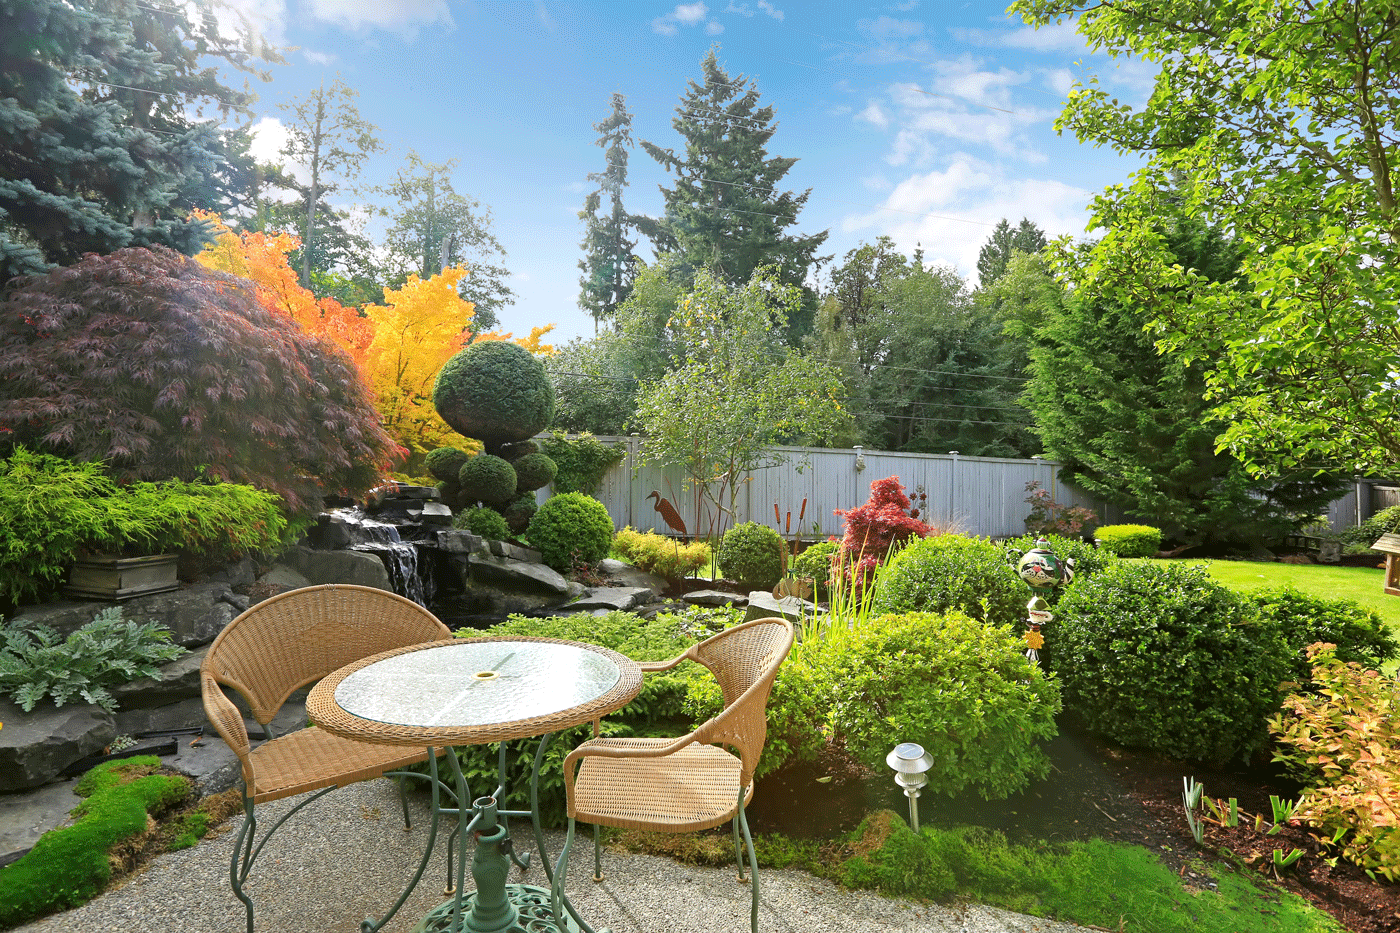 4 Backyard Ideas to Spruce Up Your Home - bhgrelife.com